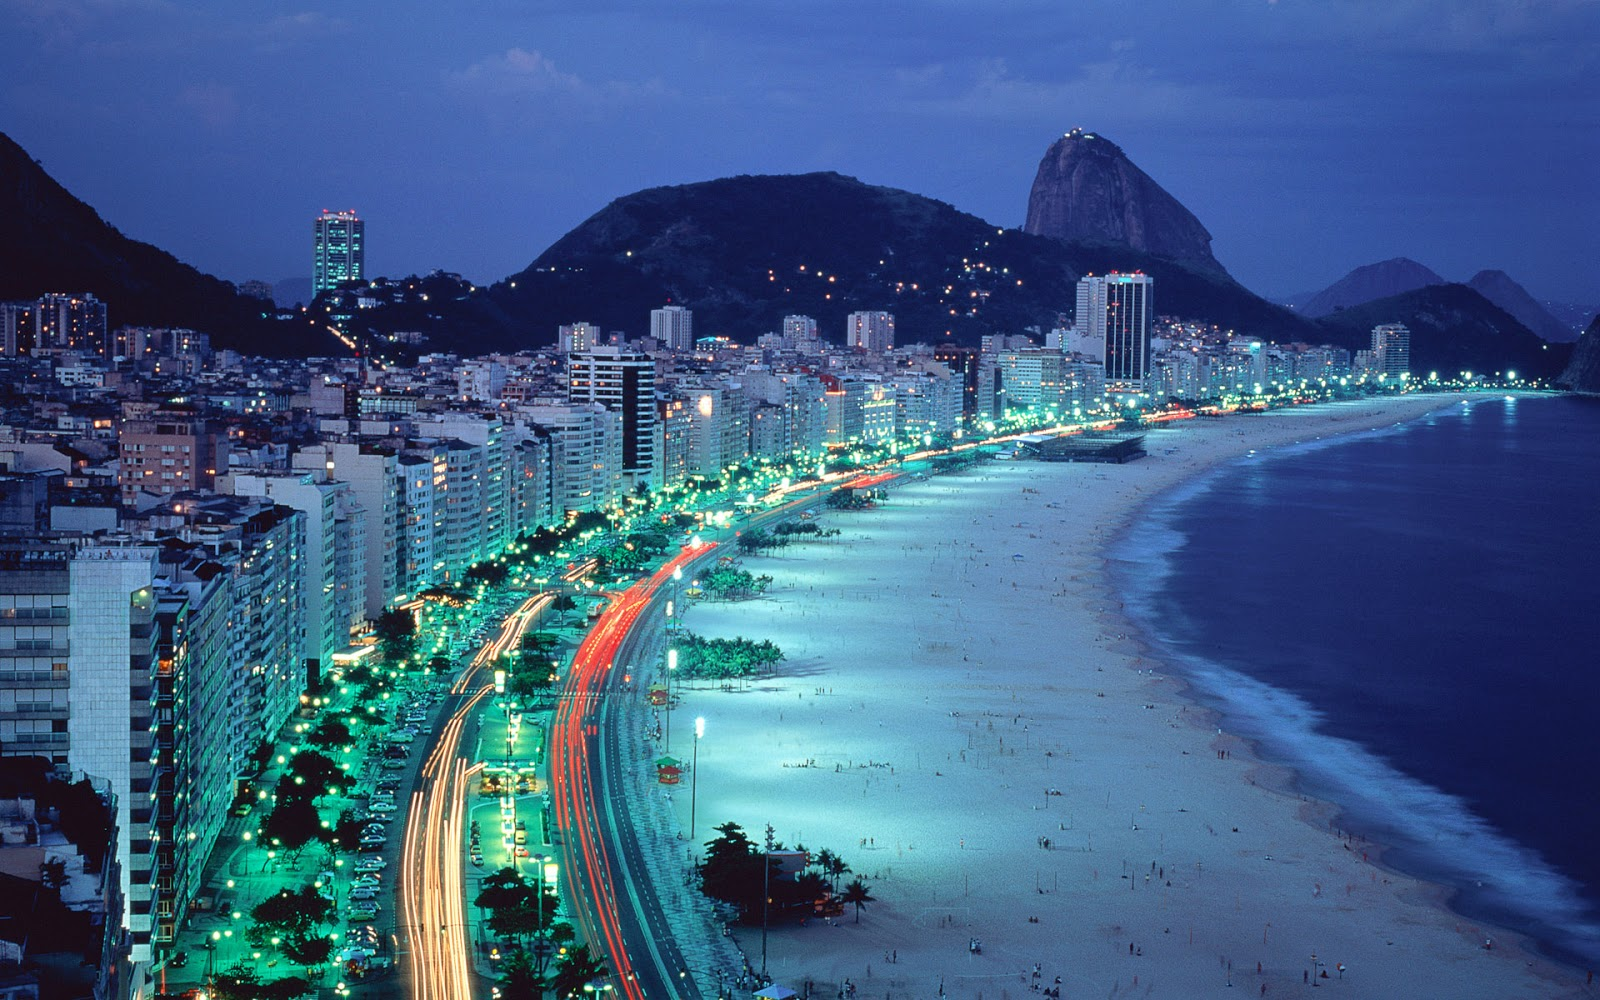 Copacabana Beach Offers A Bit More Than Sand And Sports Oriented Activities All You Have To Do Is Cross The Street To Explore The Cafes Restaurants And